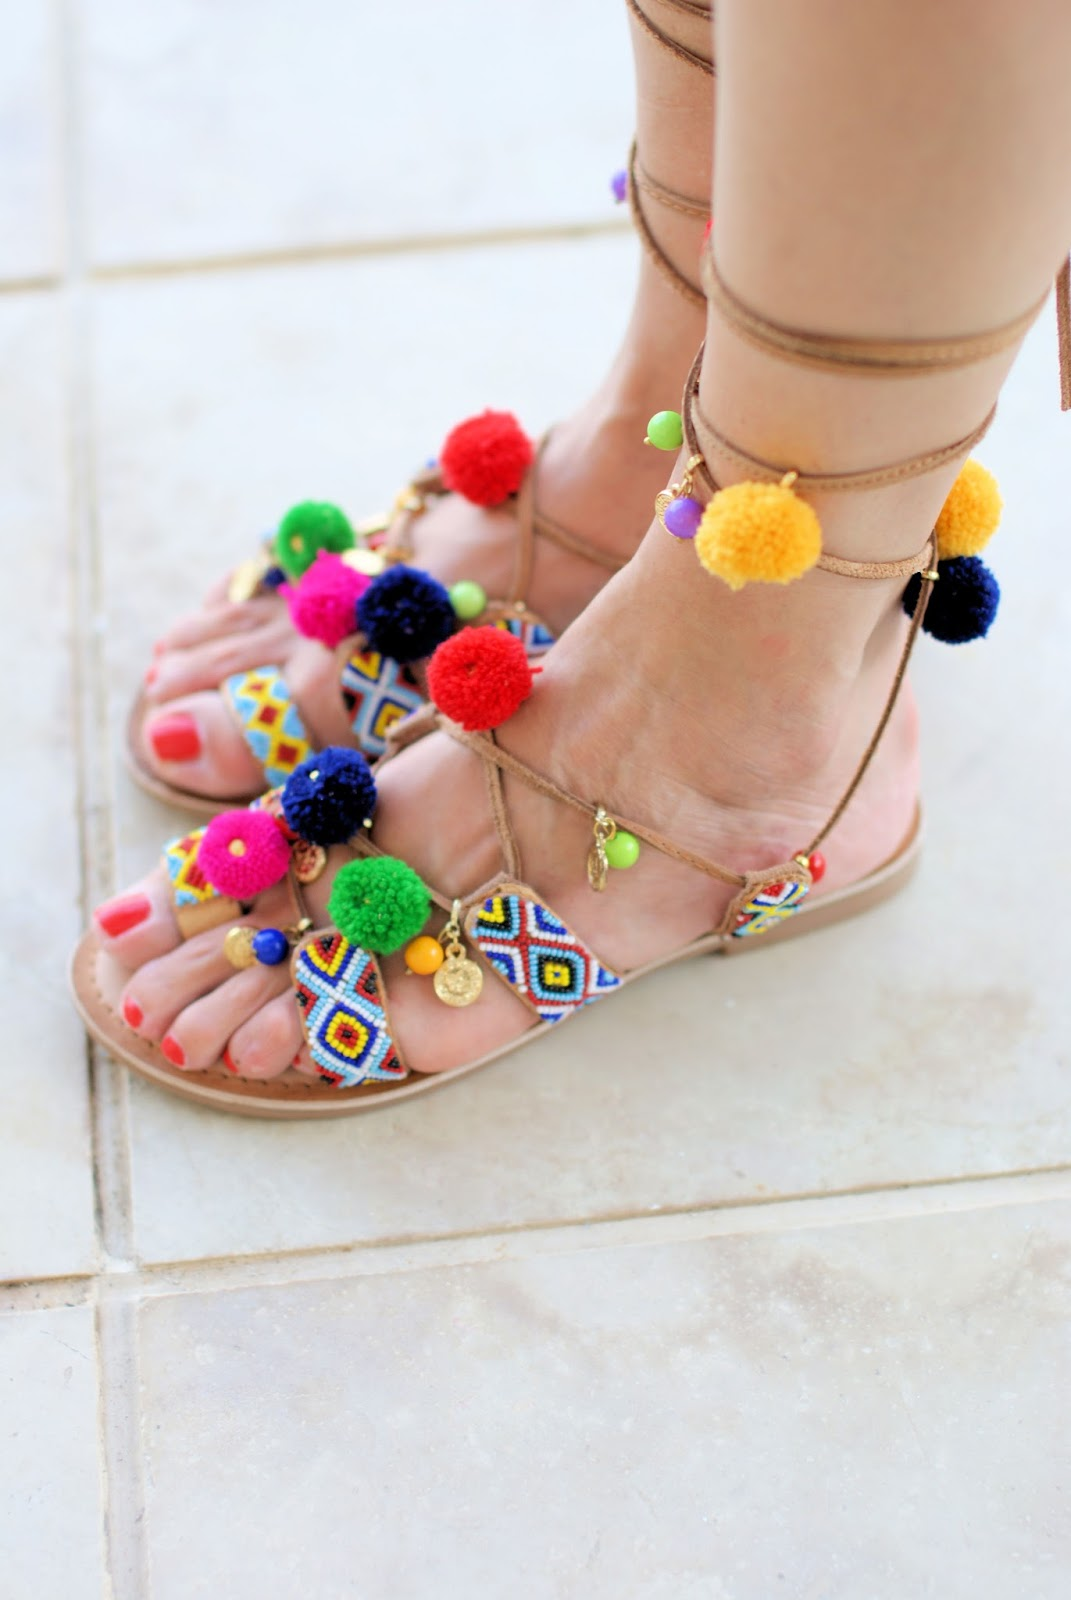 Gioseppo Omahas tie up sandals with charms and pom-poms on Fashion and Cookies fashion blog, fashion blogger style